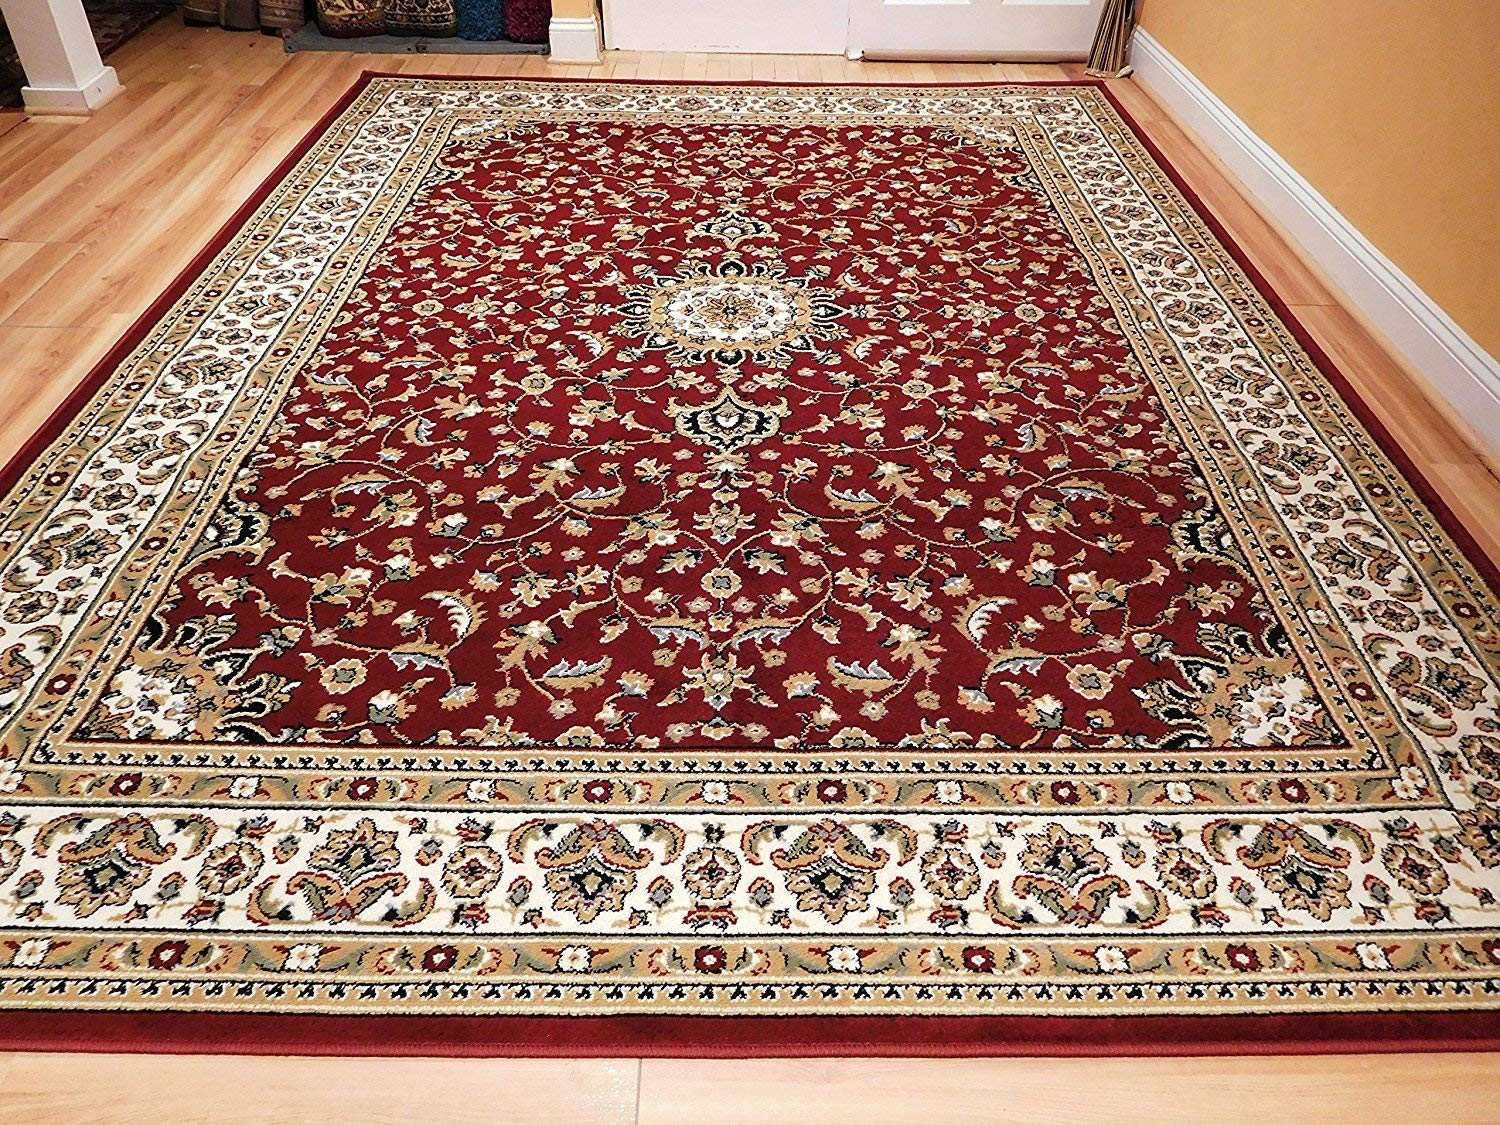 persian rugs amazon.com: large 5x8 red cream beige black isfahan area rug oriental WHNUHMR